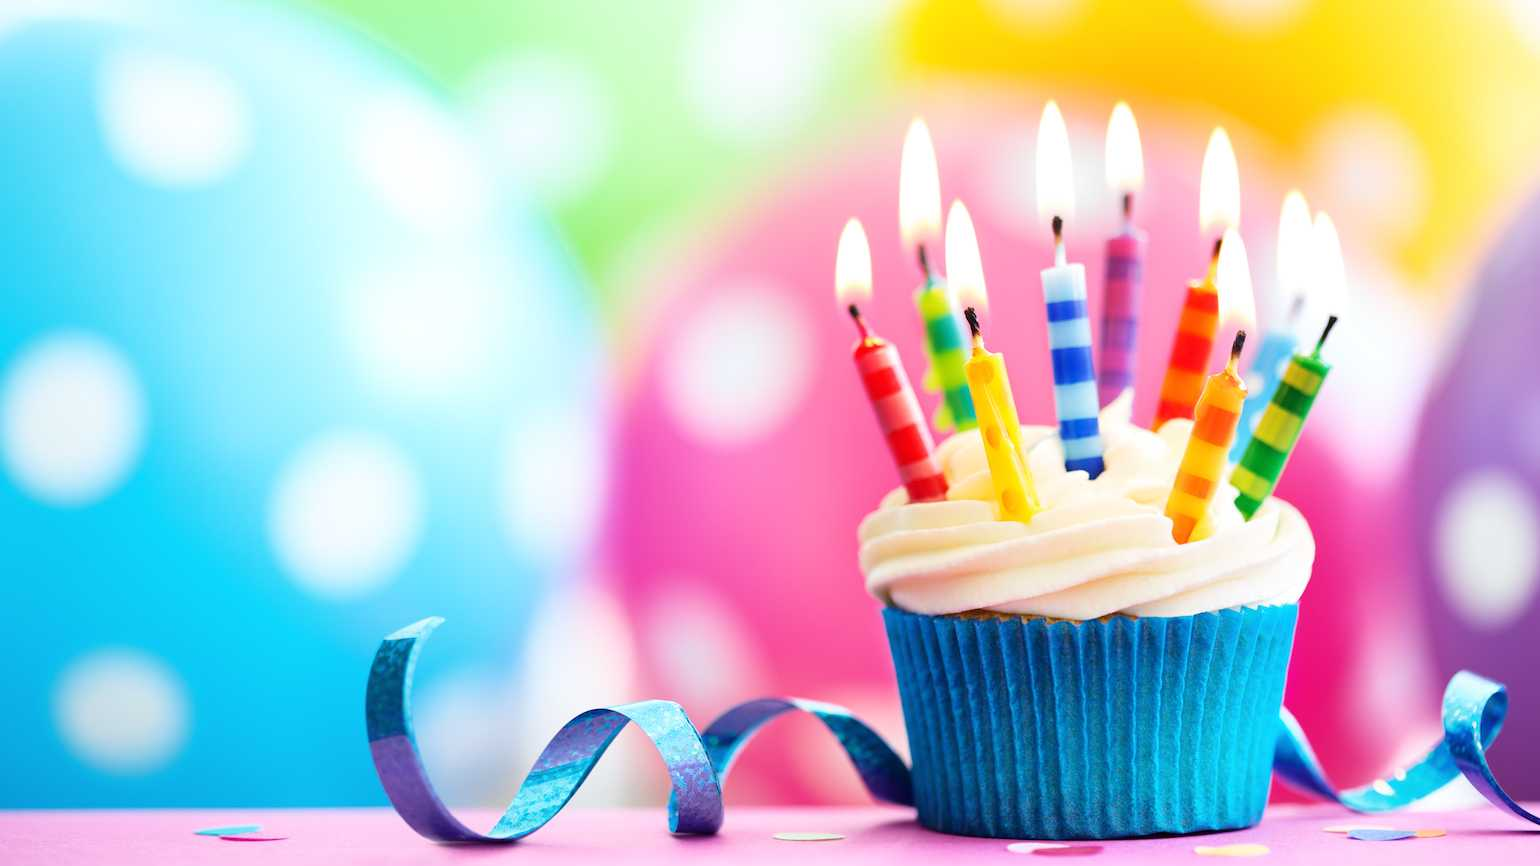 3 ways to celebrate your birthday on a positive note